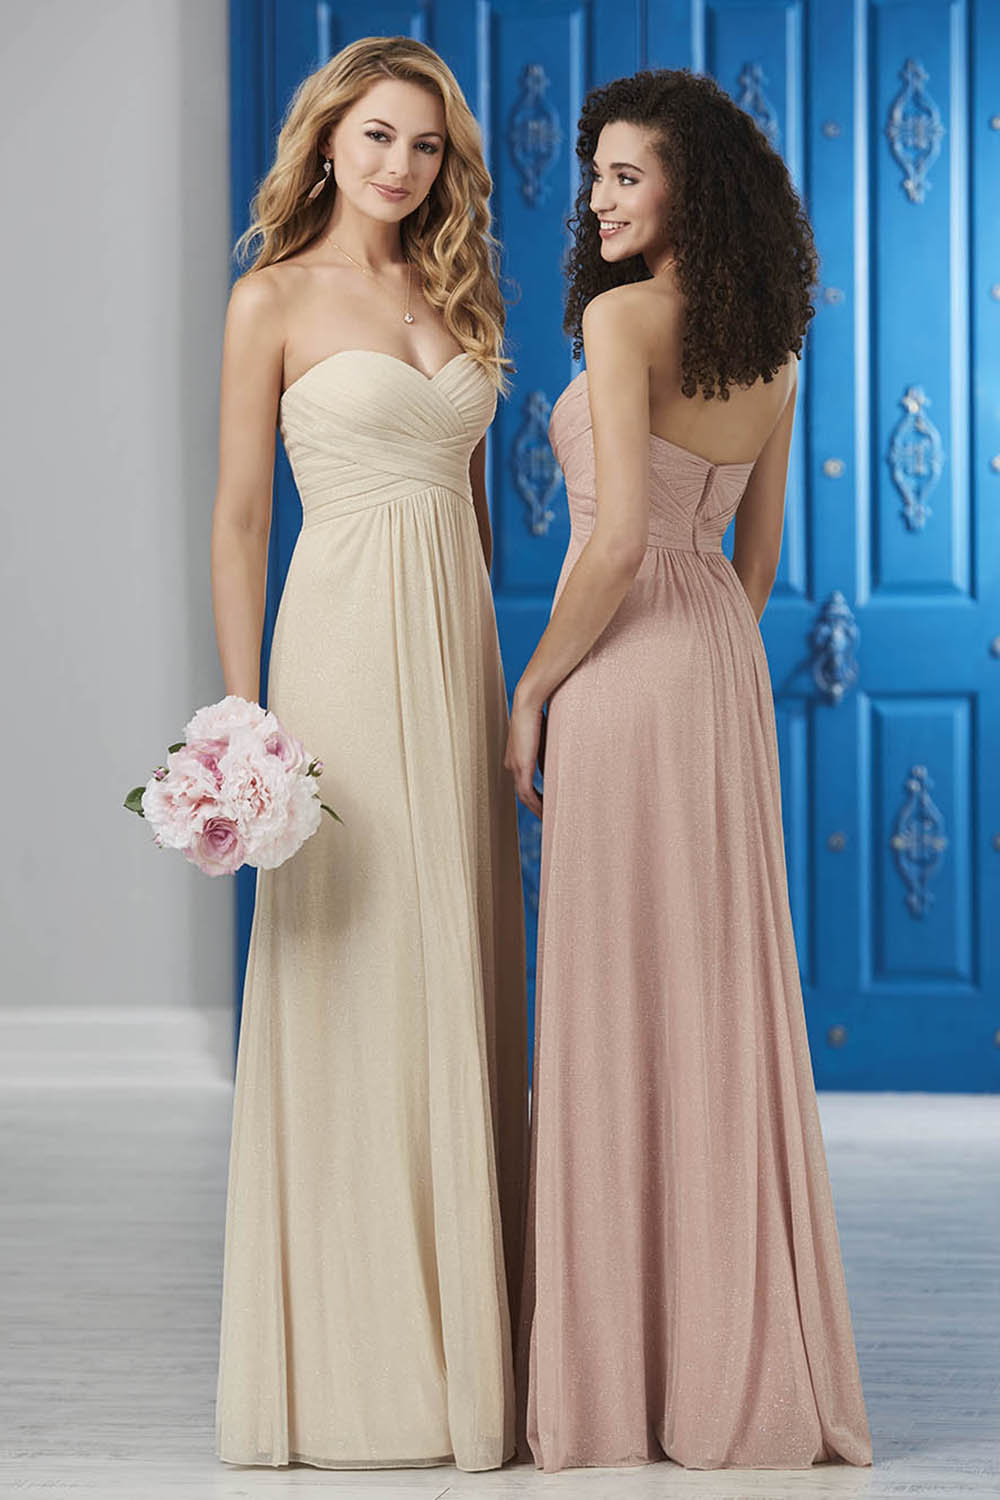 bridesmaid-dresses-jacquelin-bridals-canada-26182